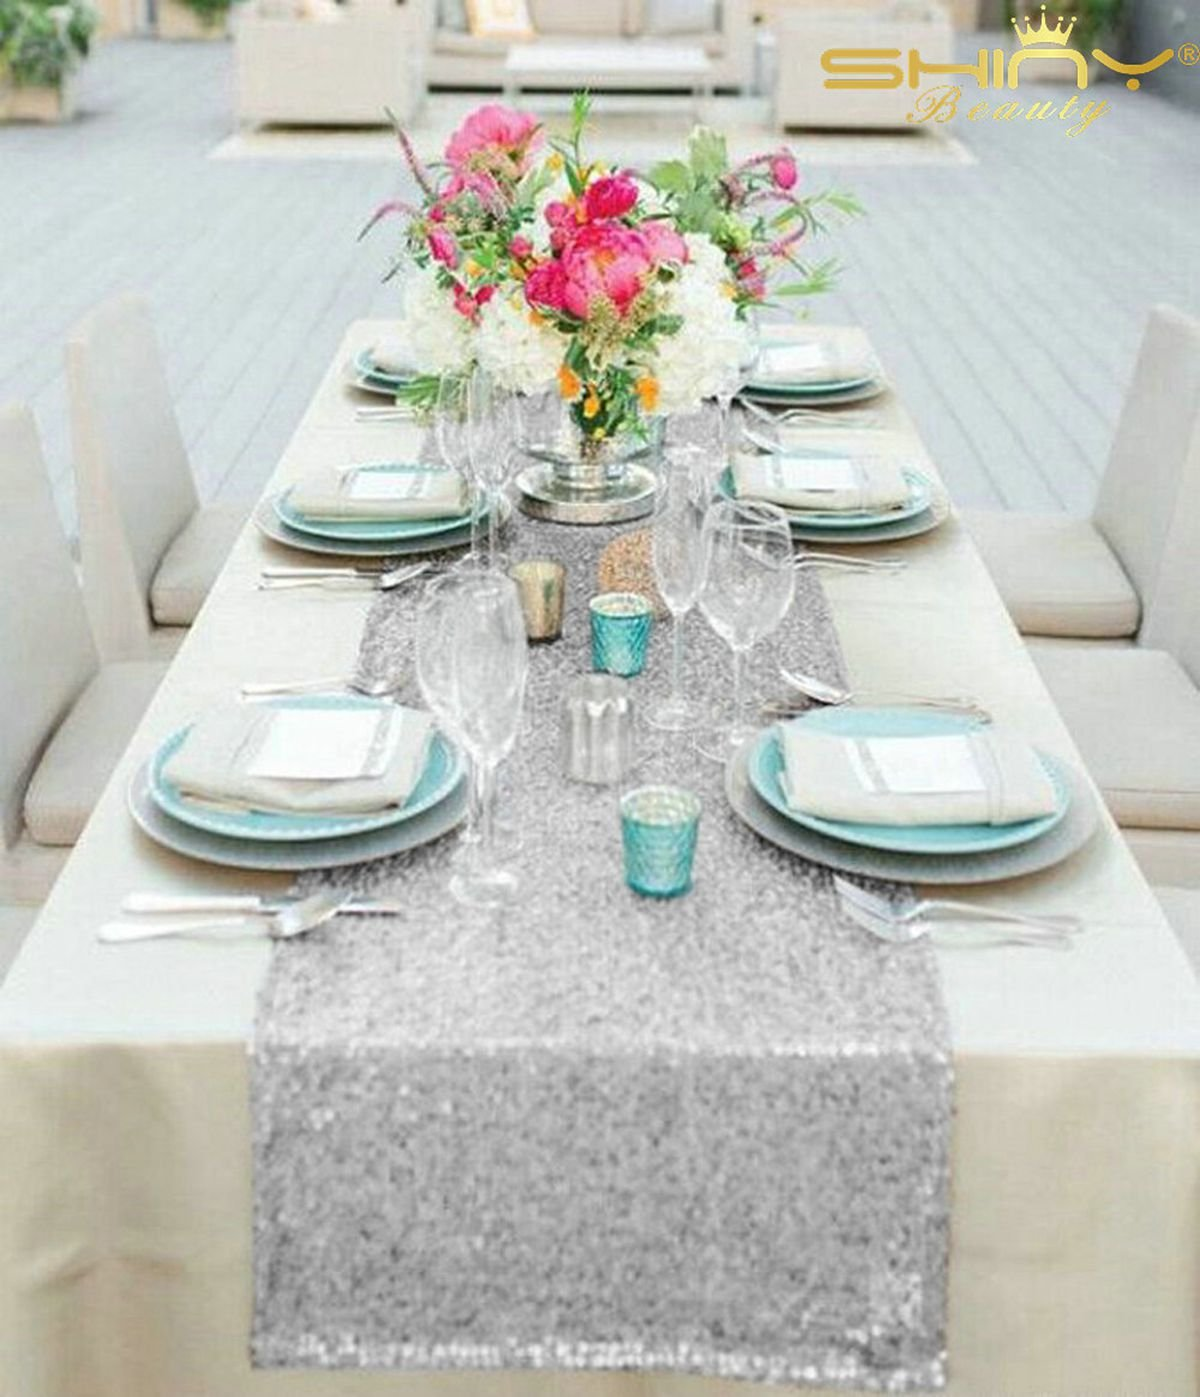 ShinyBeauty Silver Table Runners Wedding Decor Sequin Table Runner Sequin Table Runners Silver Table Runners Pack Of 10 Birthday Decorations 12x72-Inch: ...